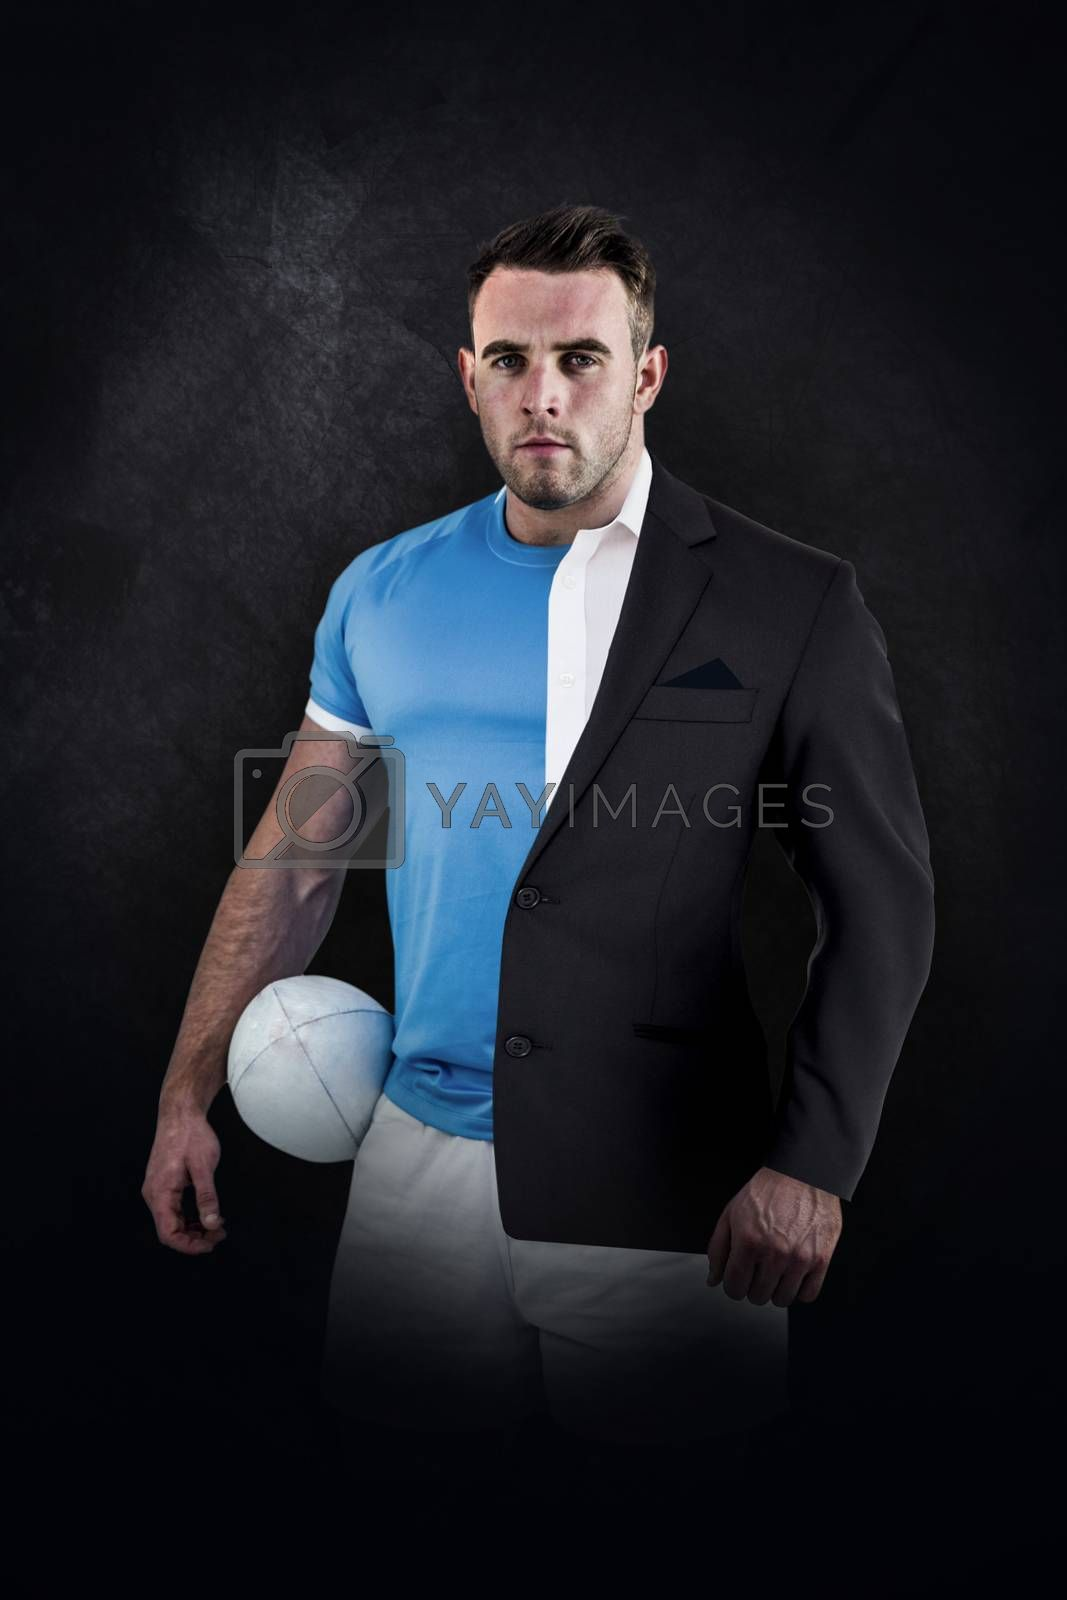 Rugby player looking at camera against half a suit